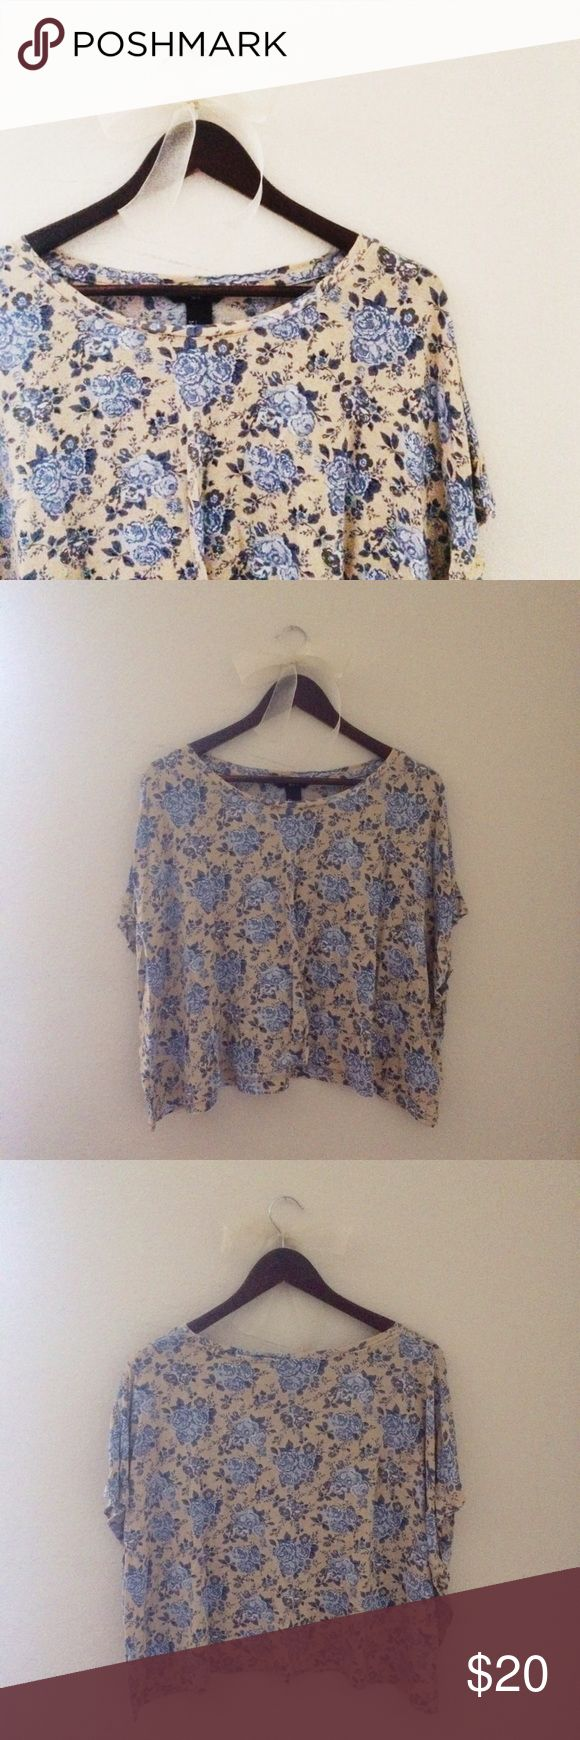 Floral Loose Top This loose top looks great with dark blue jeans! Blue & light yellow/cream. 100% Viscose.  ✅Reasonable offers welcome! ✅BUNDLE DISCOUNTS! 🚫No trades/paypal/other apps. 🚫No lowball offers. H&M Tops